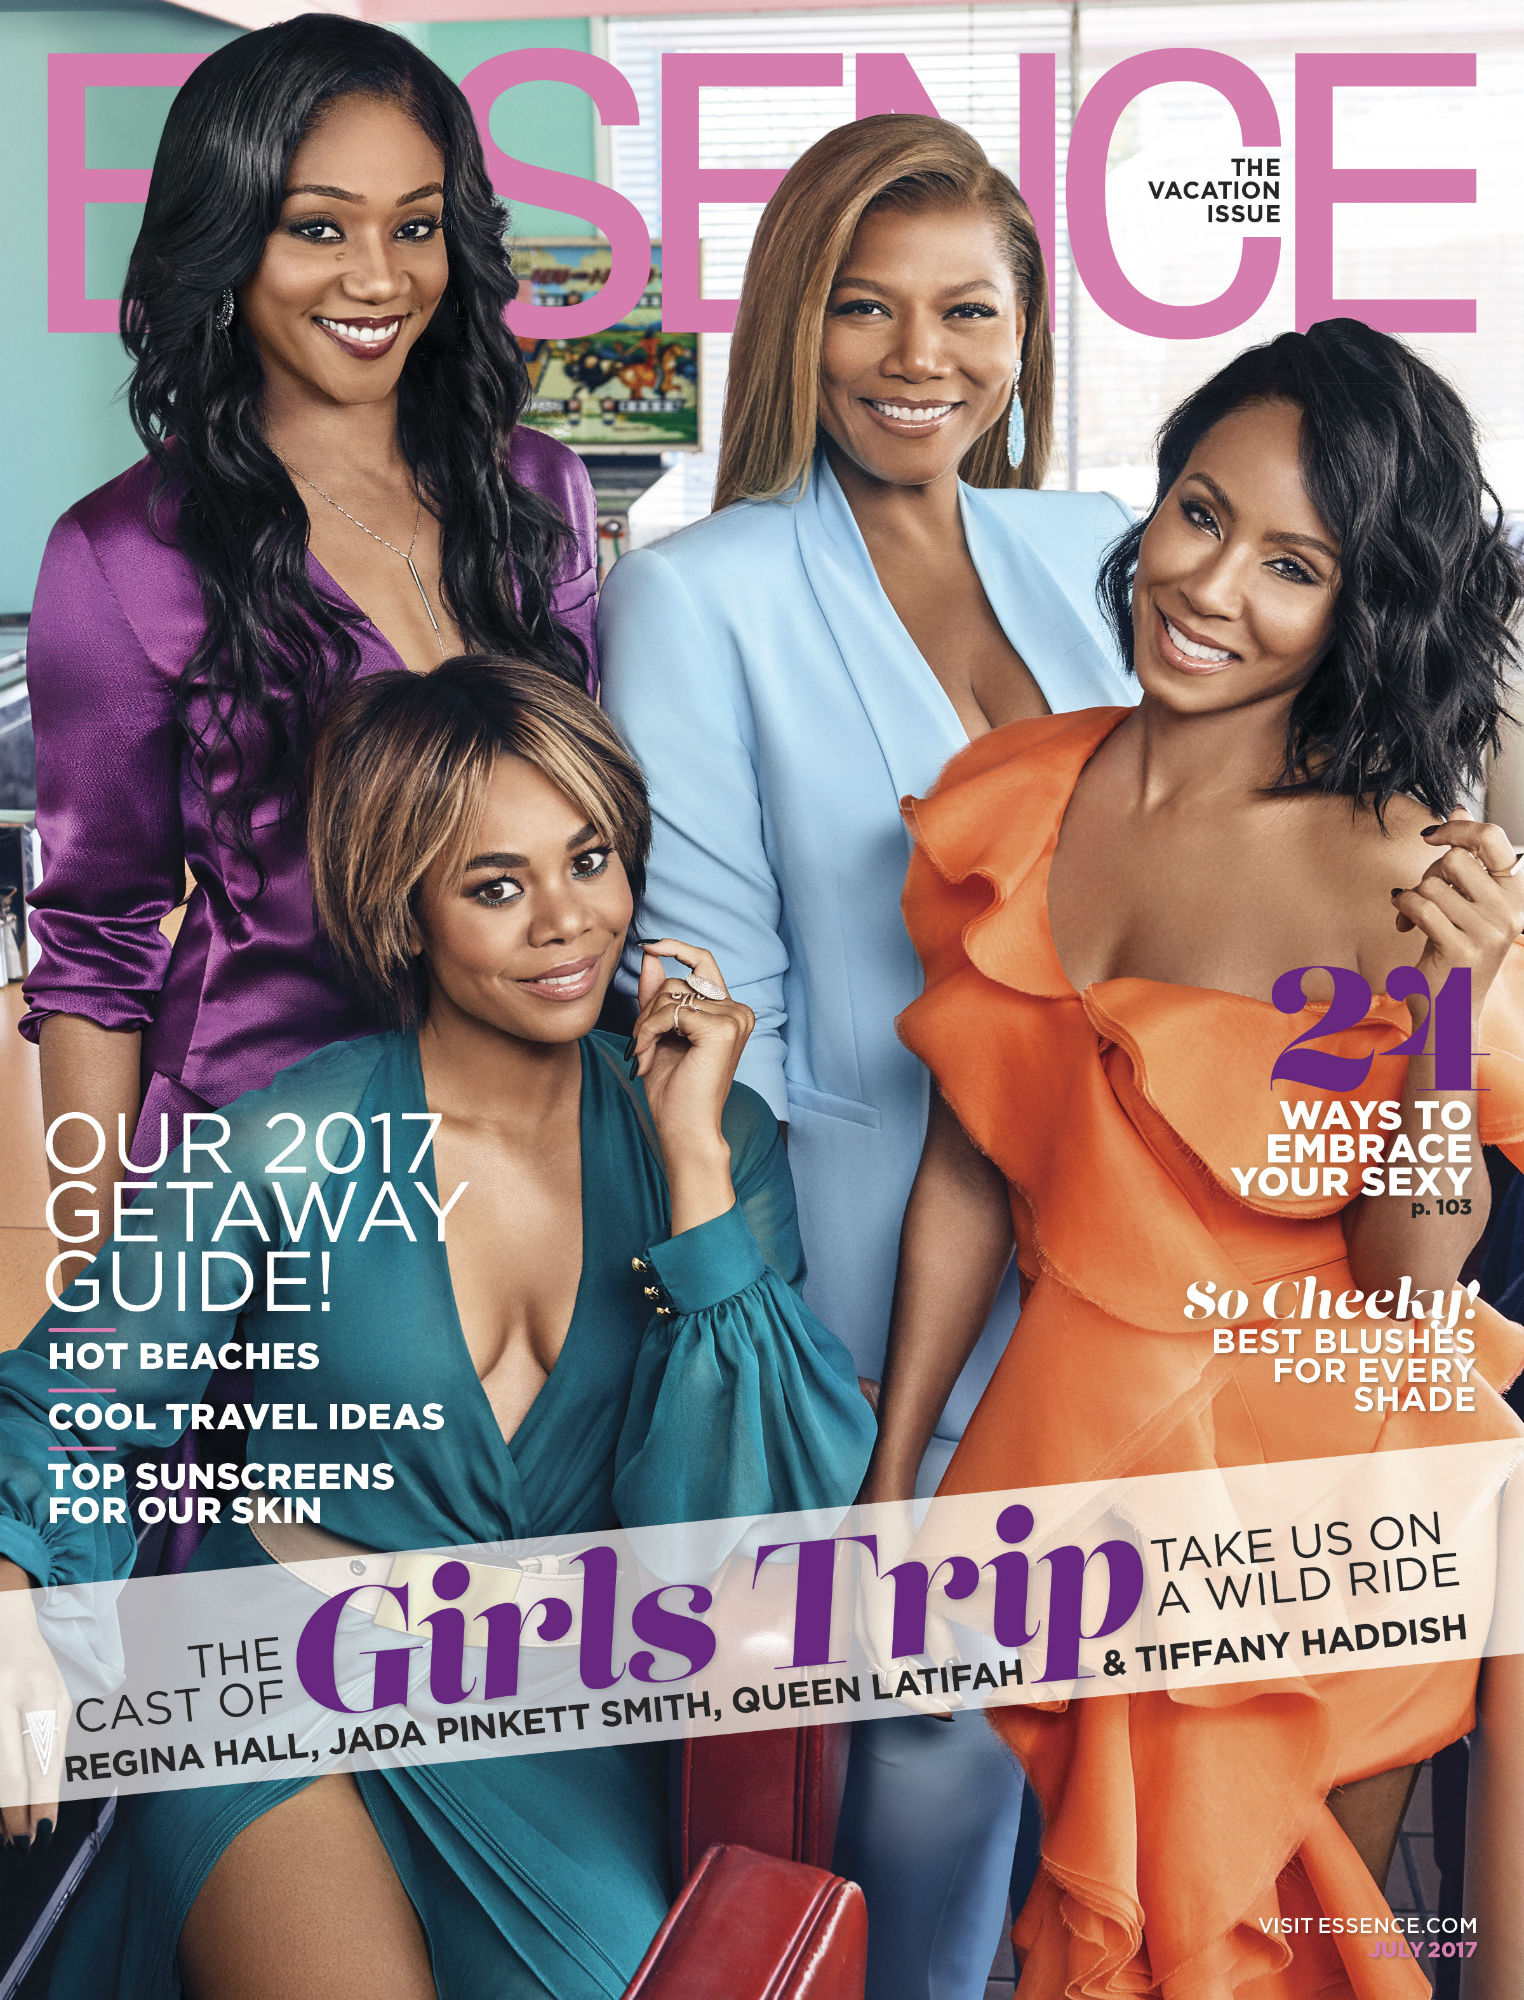 Essence July 2017 Cover Girls Trip - LEAD